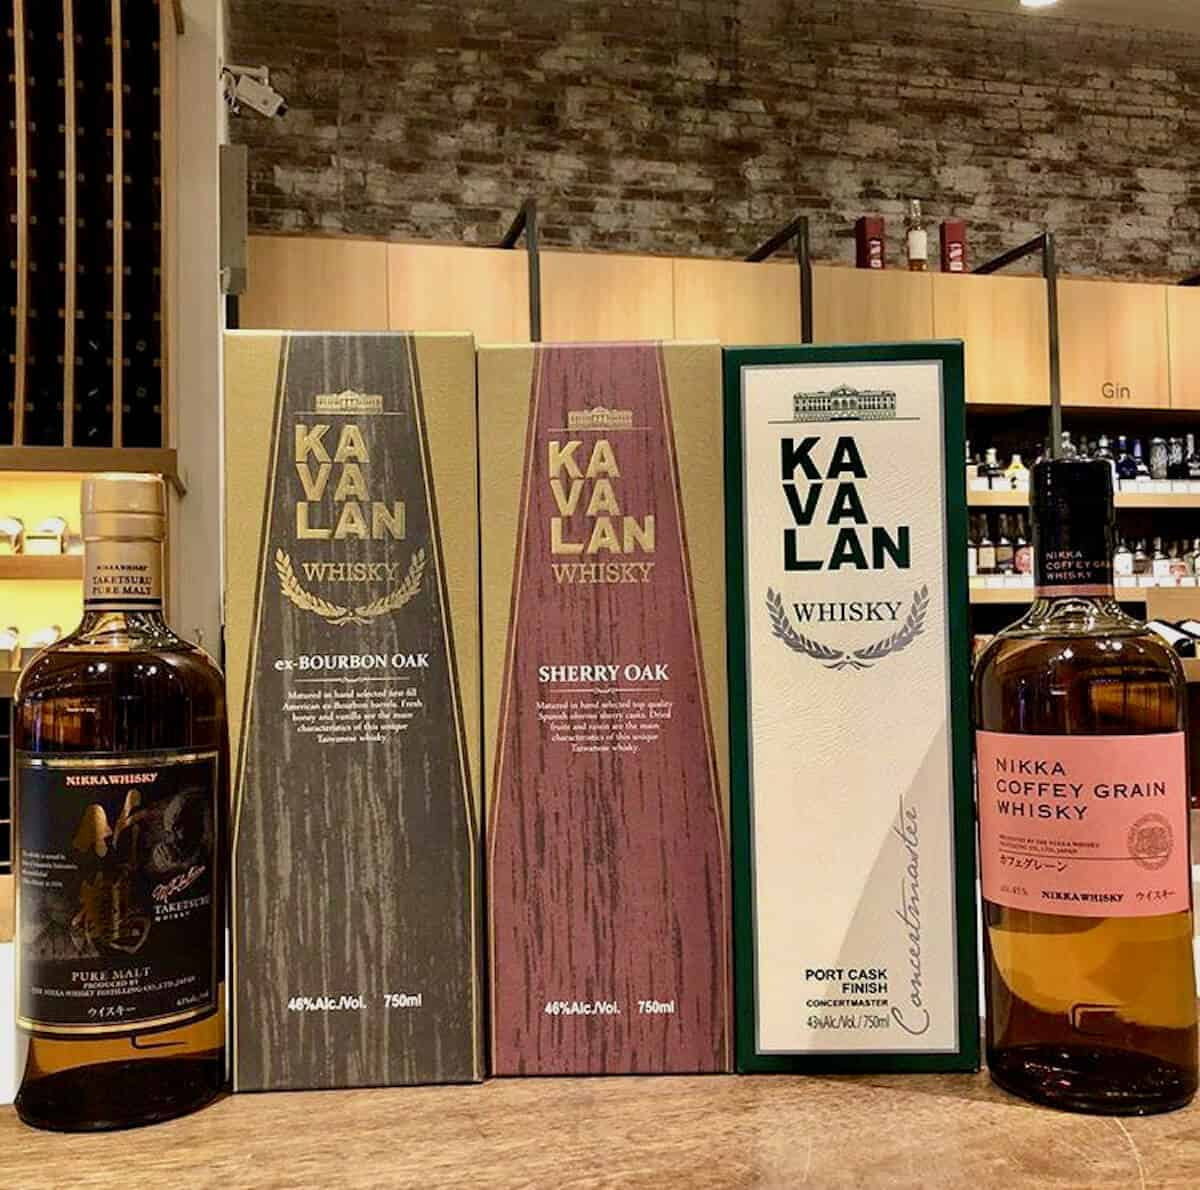 Kavalan & Nikka whisky tasting lineup in boxes on a table.